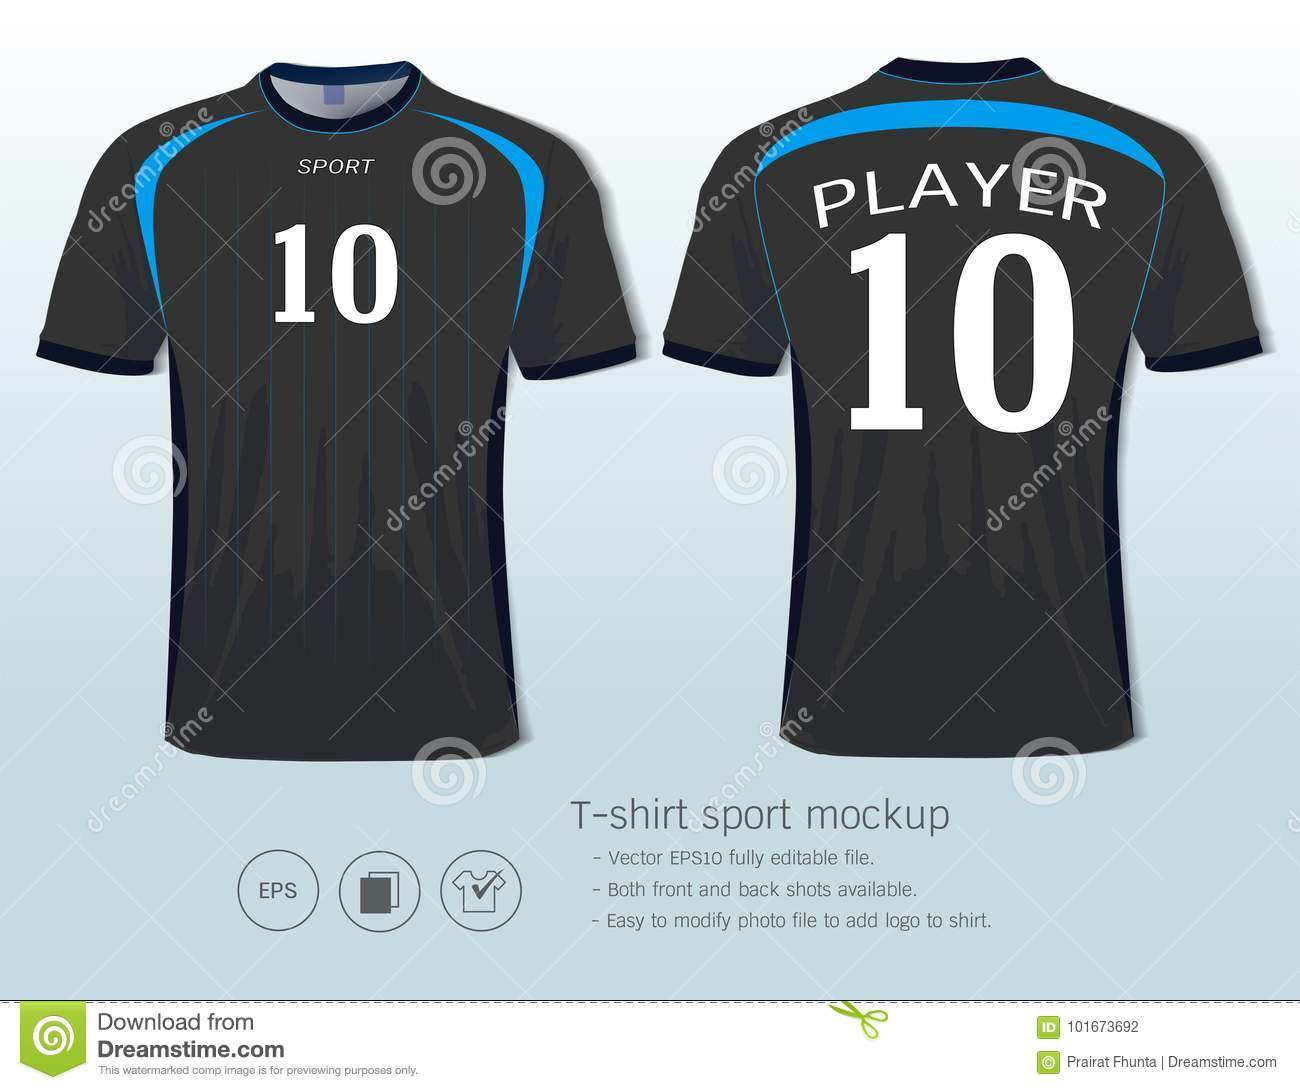 9b5e55f48 T-shirt sport design template for football club or all sportswear, Front  and back shots available, Ready for customization logo and name, Easily to  change ...